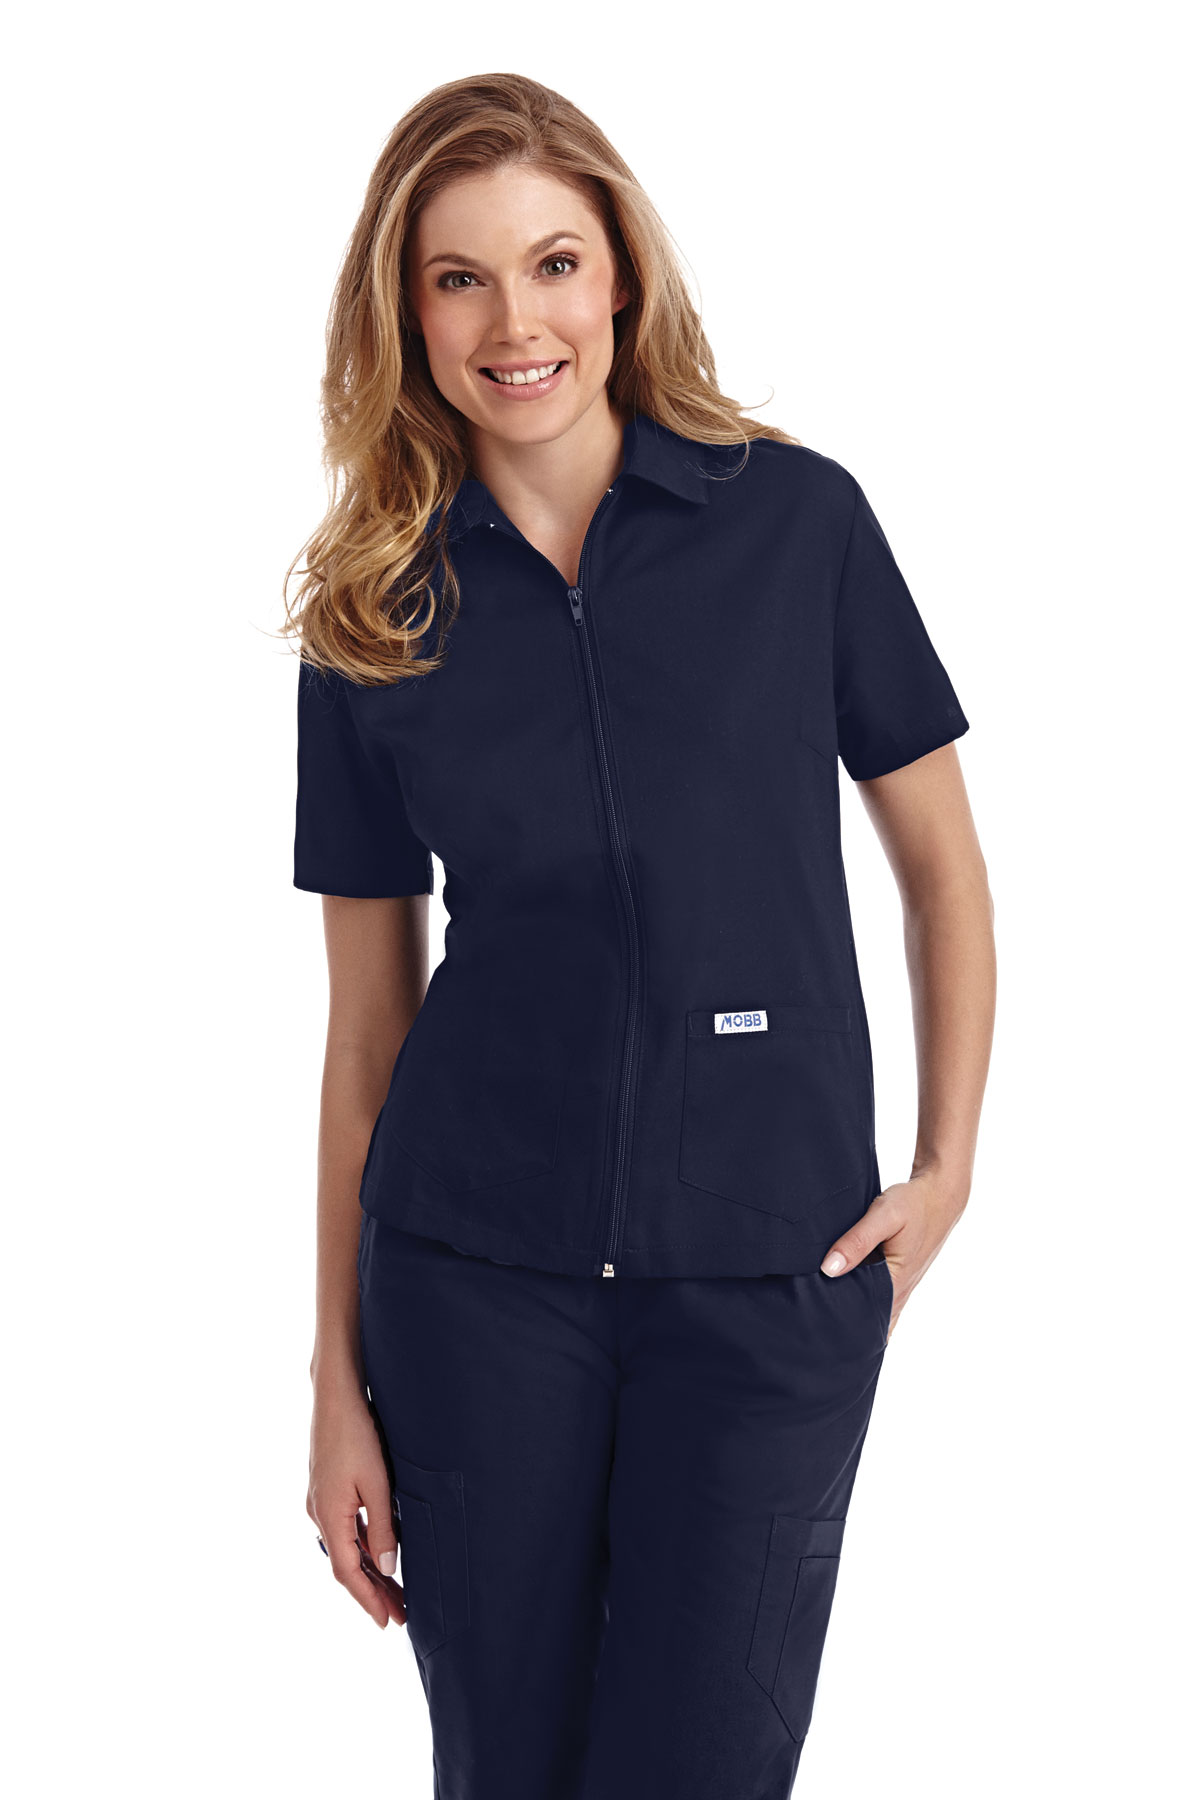 ZIPPER FRONT LADIES WORK SCRUB  TOPS